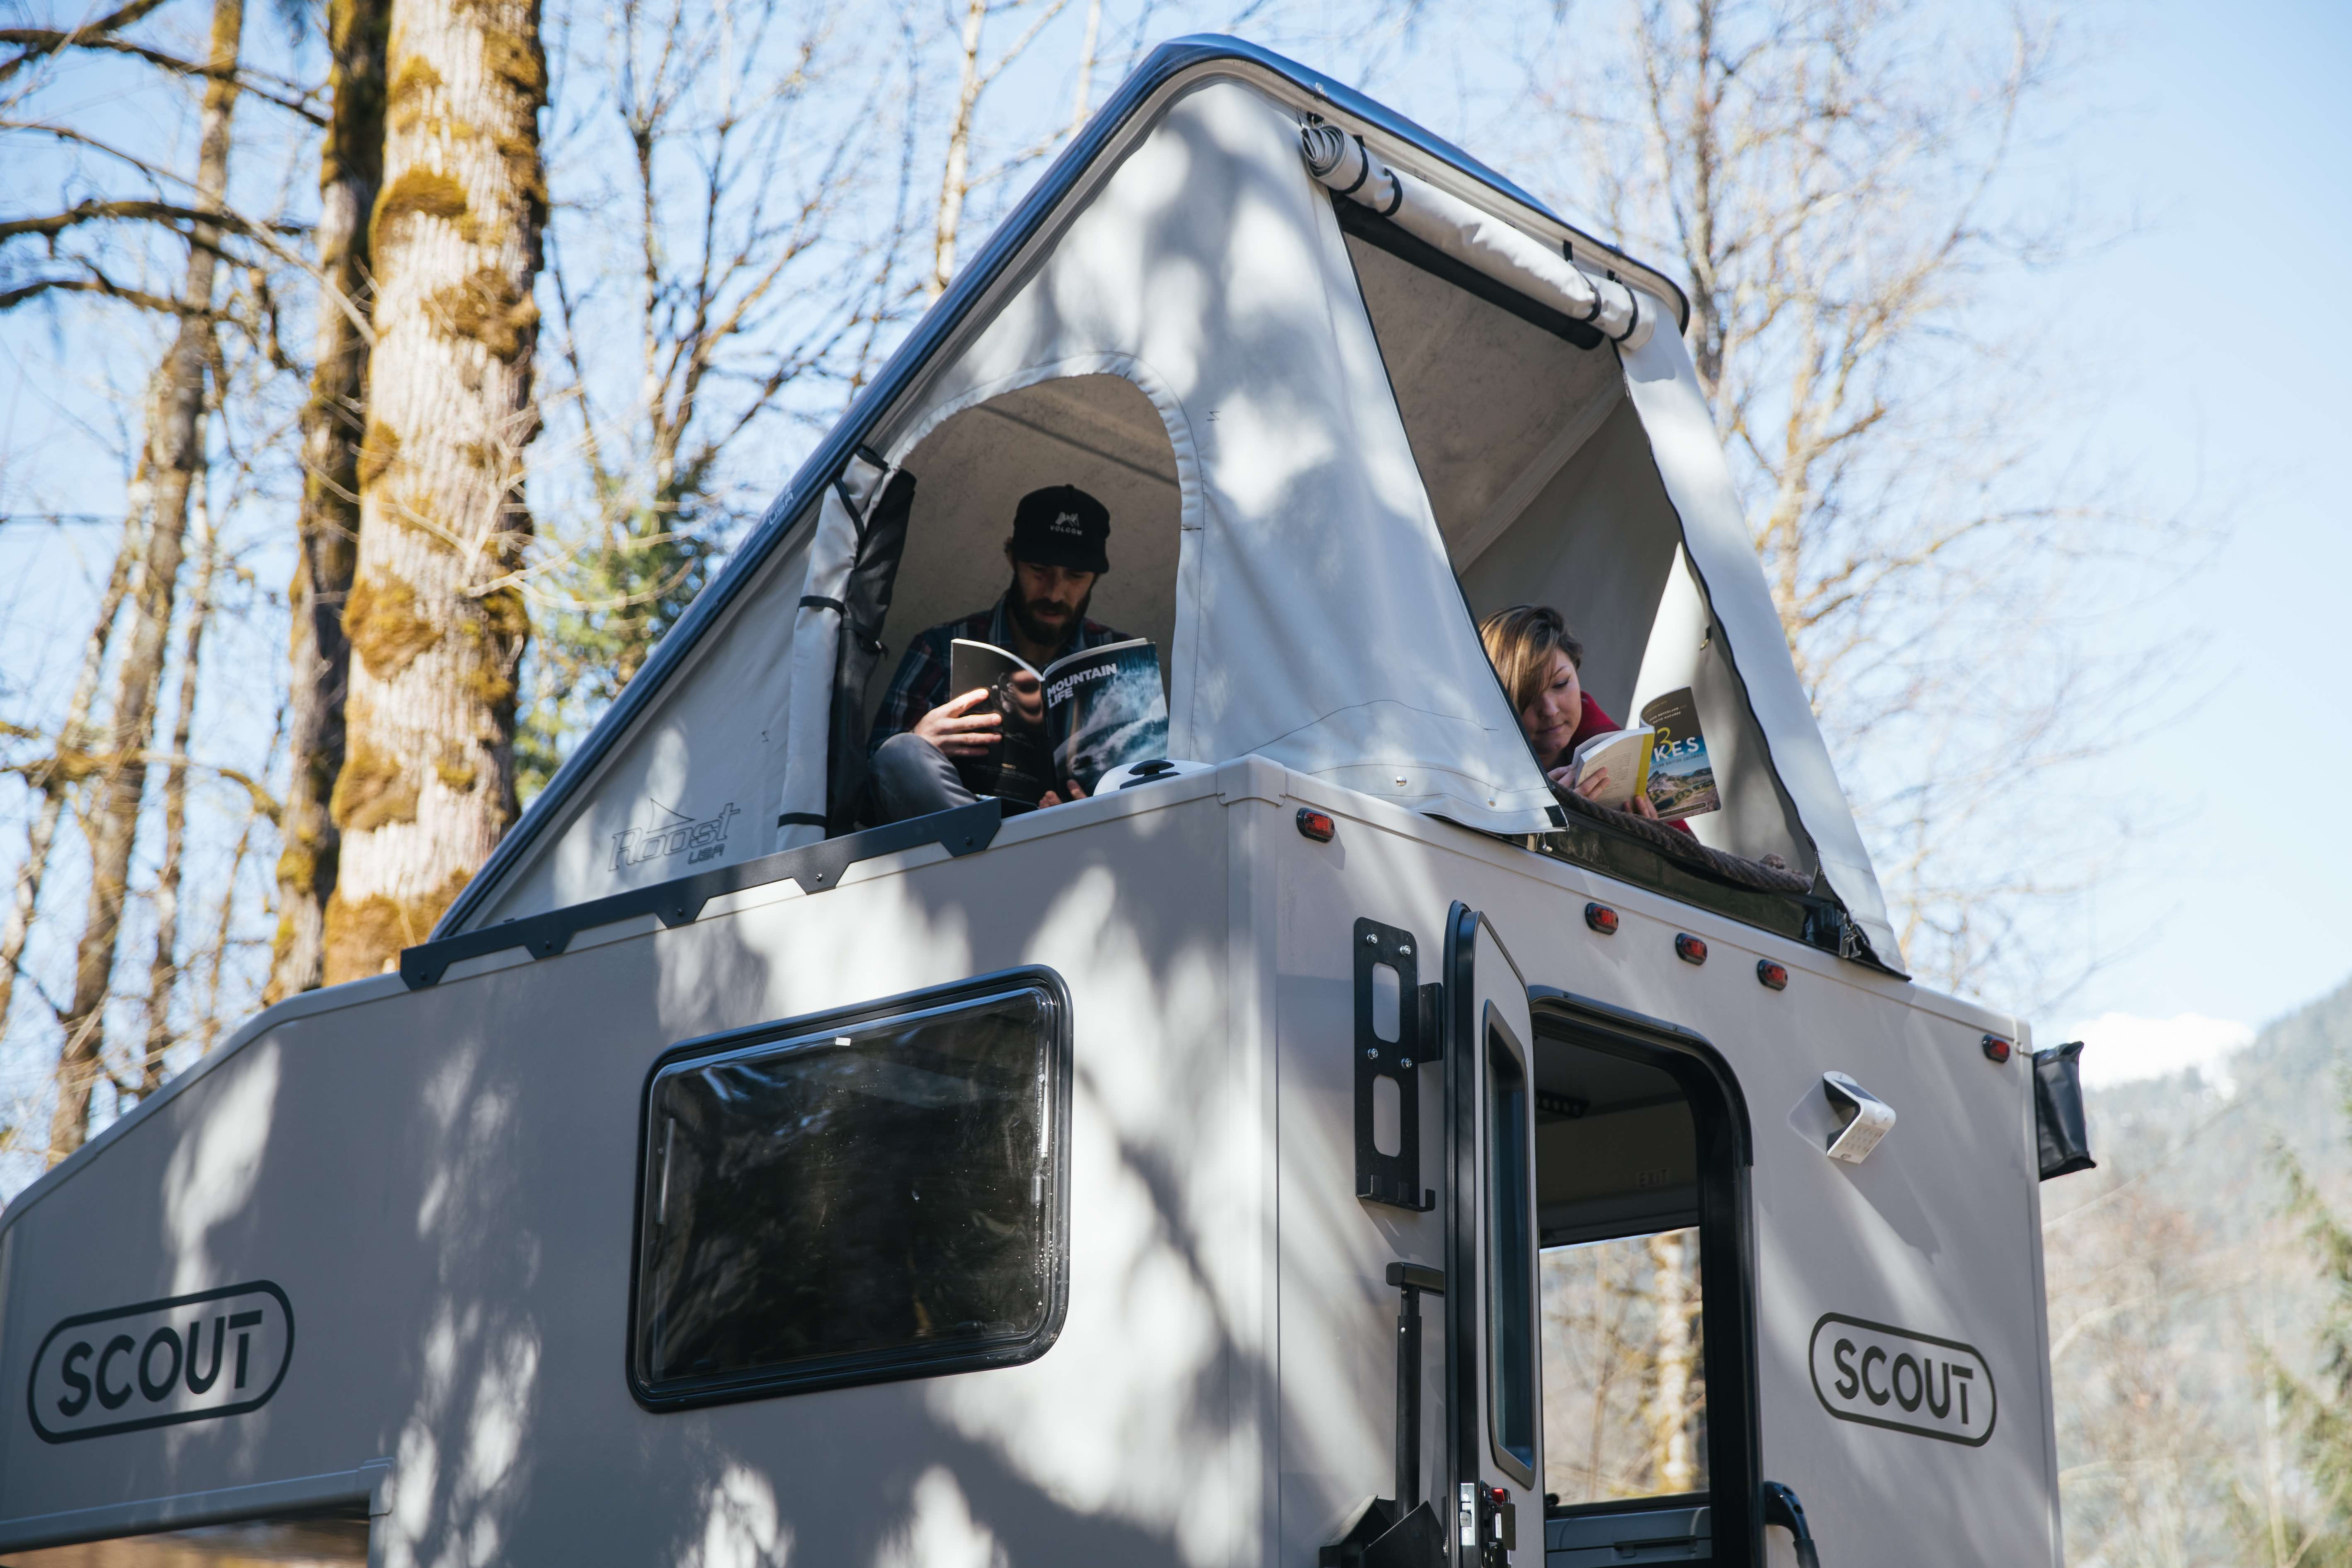 Scout Camper with rooftop tent